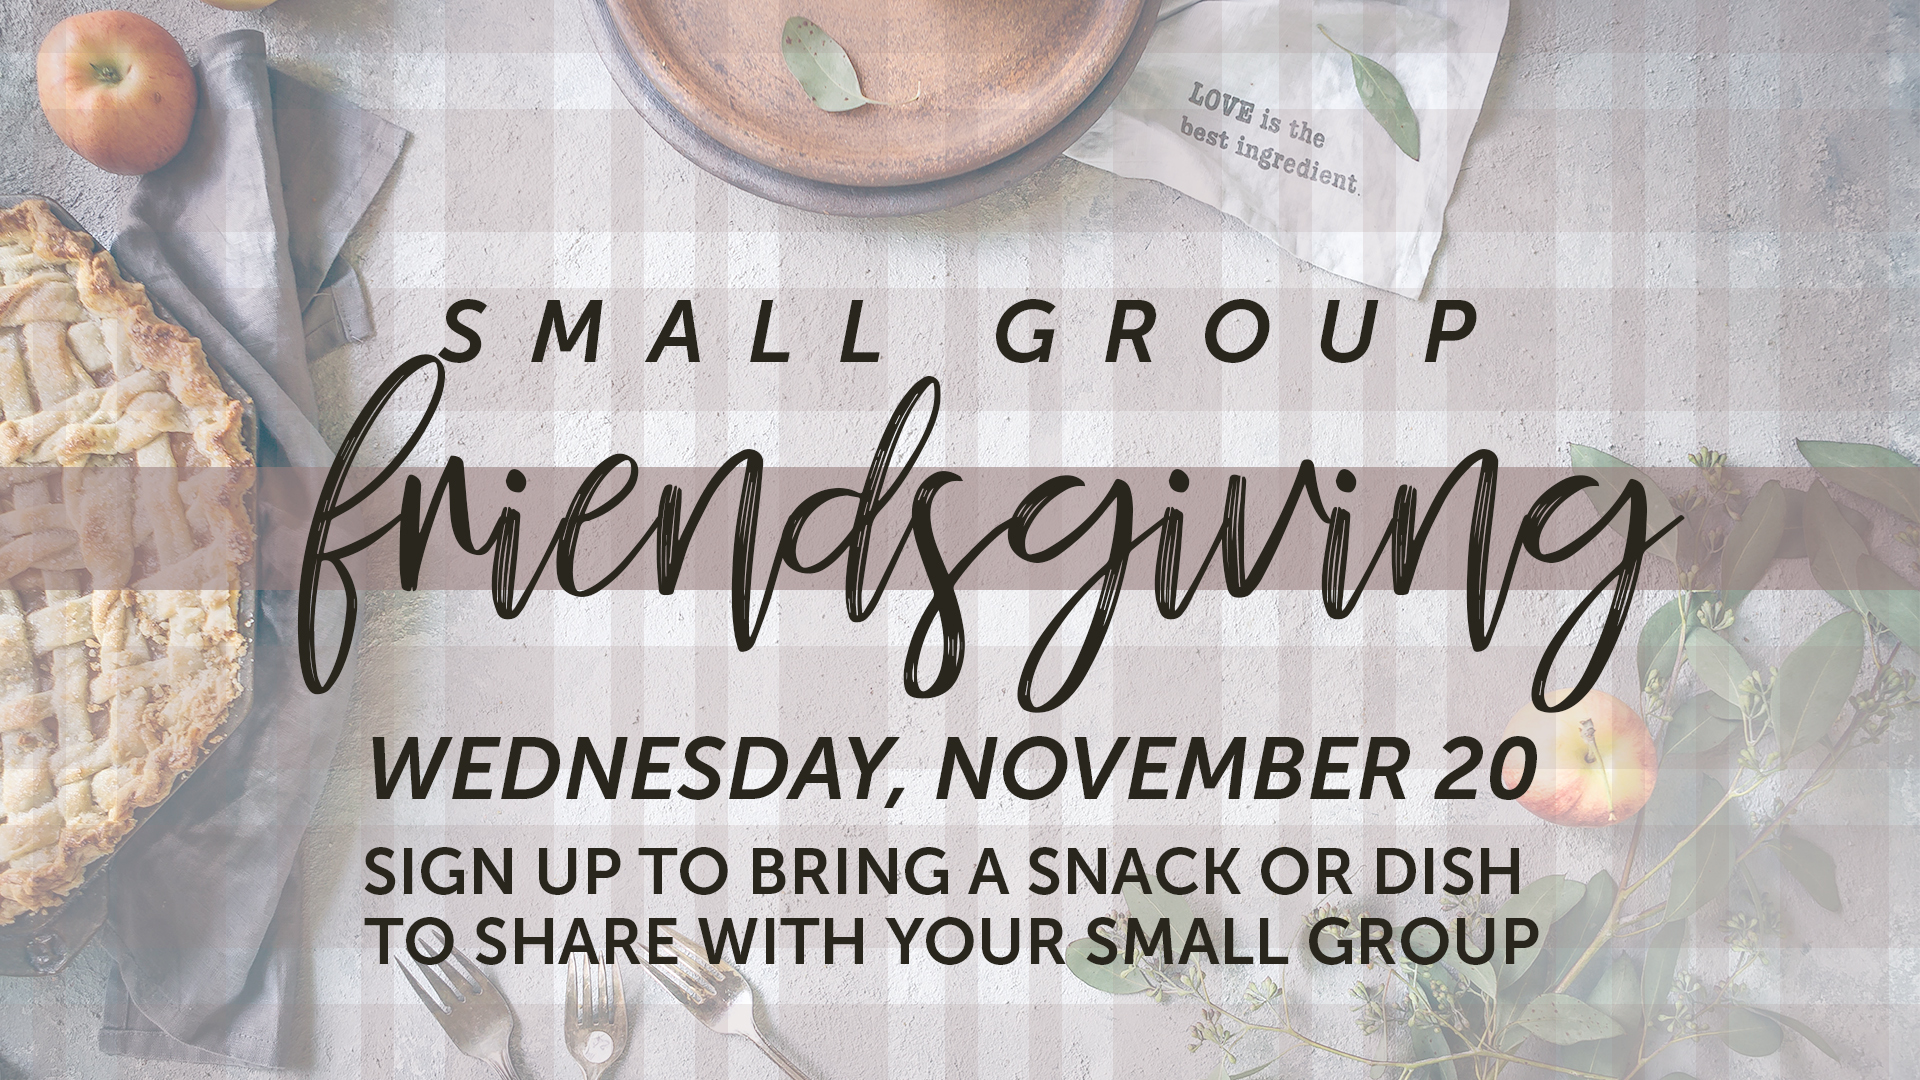 HS-Friendsgiving-Announcement.jpg?mtime=20191112125949#asset:25226